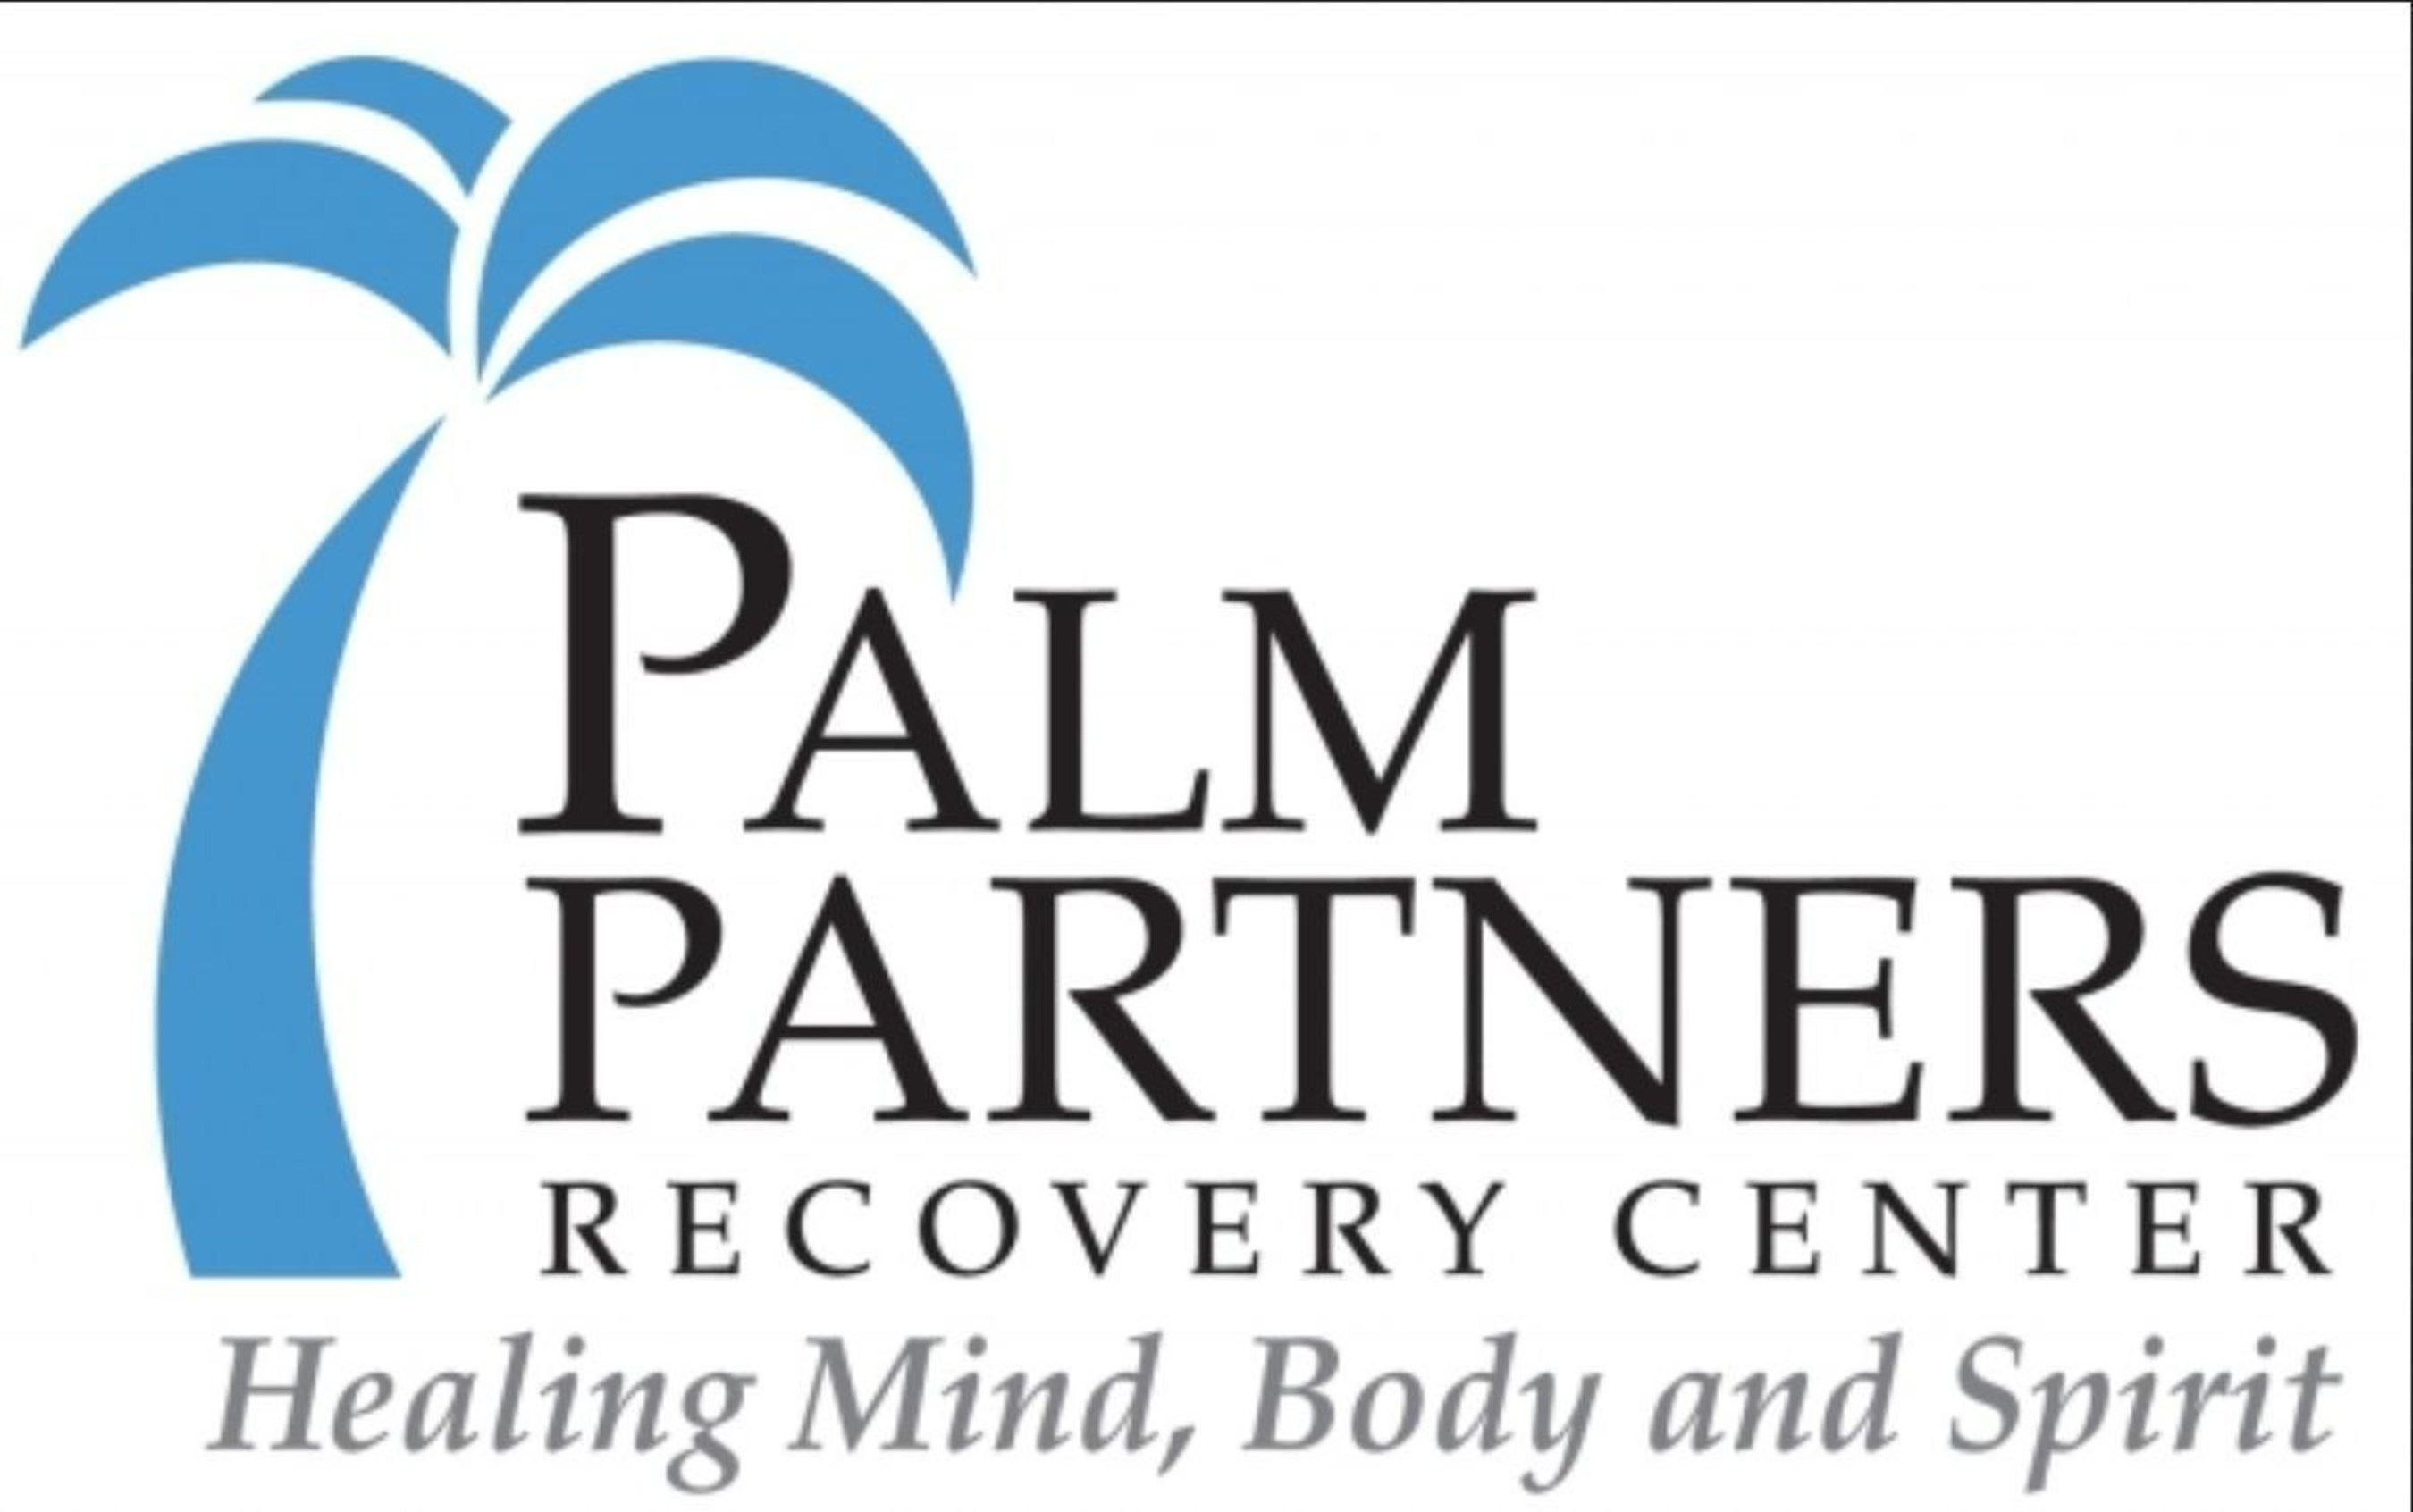 Palm Partners Recovery Center Clients Praise the Addiction Recovery Services That Saved Their Lives